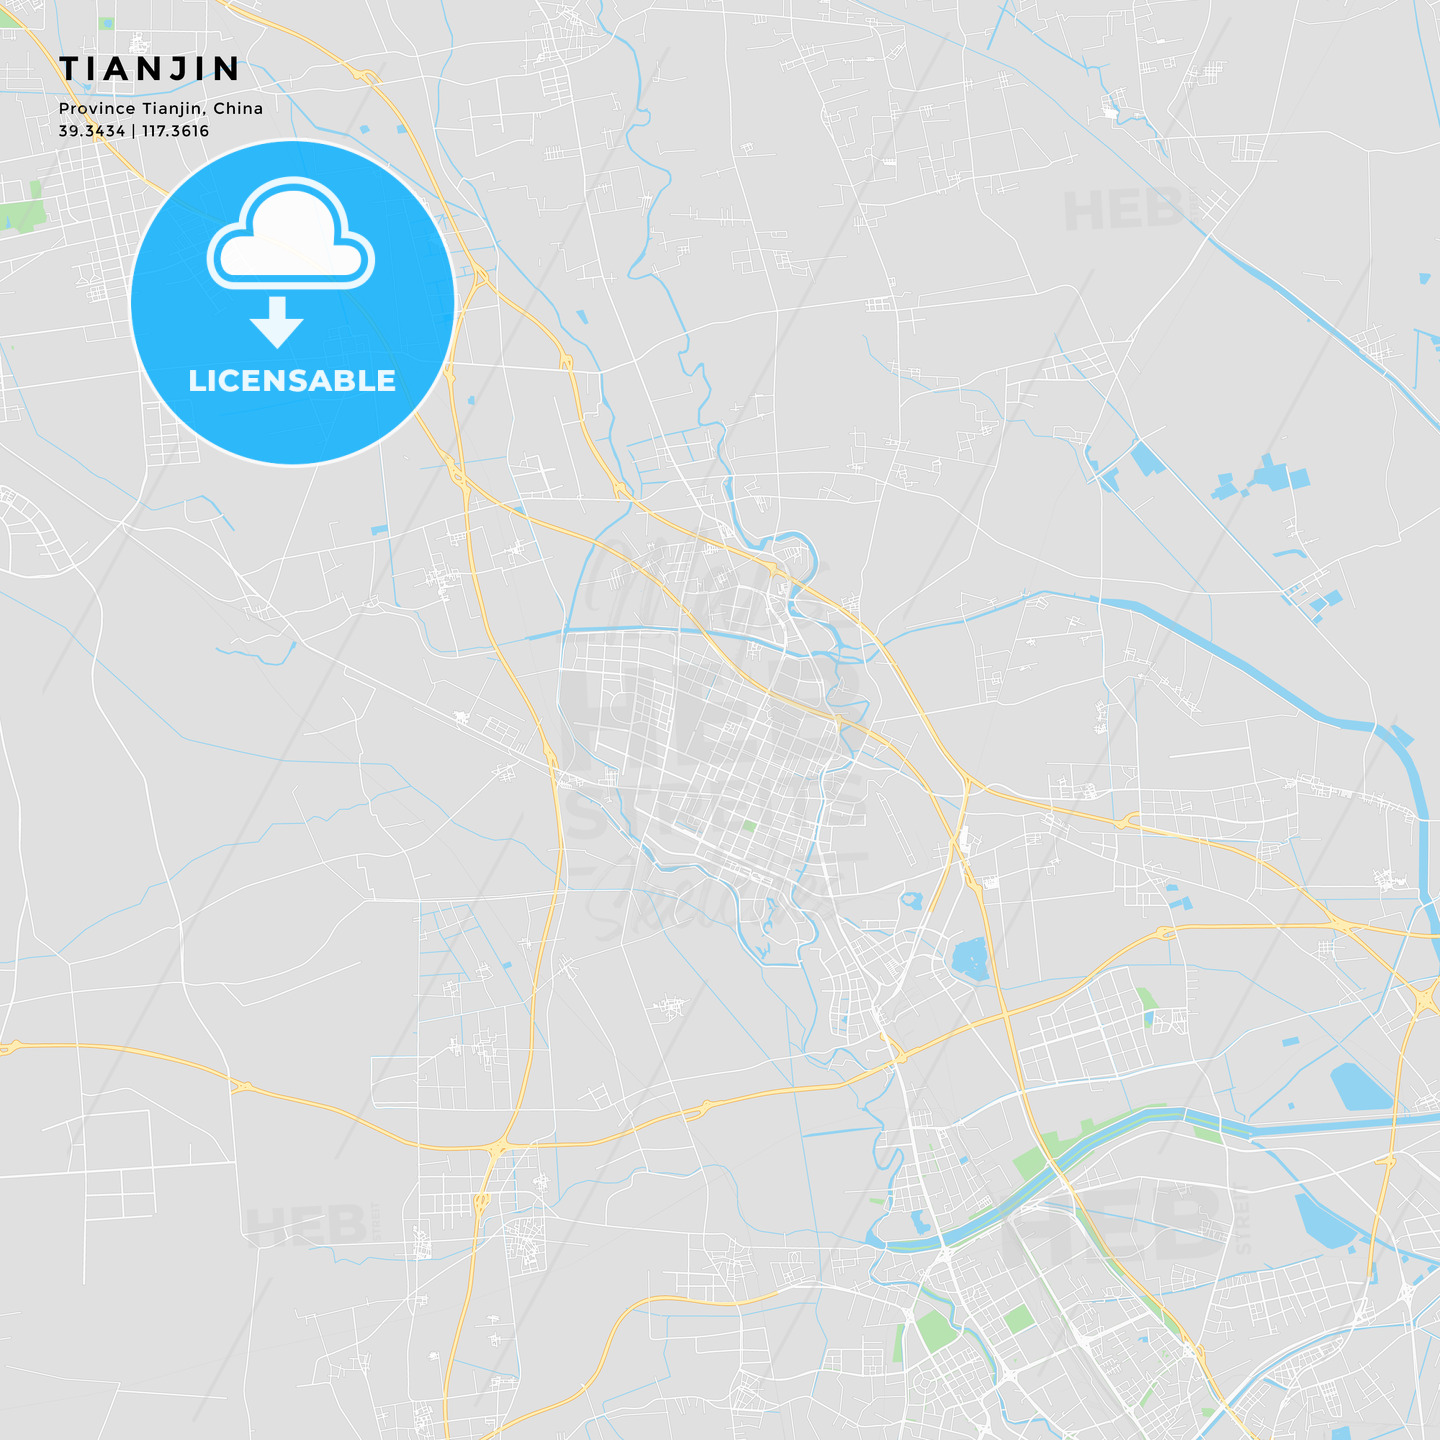 image about Printable Map of Nj identify Printable highway map of Tianjin, China